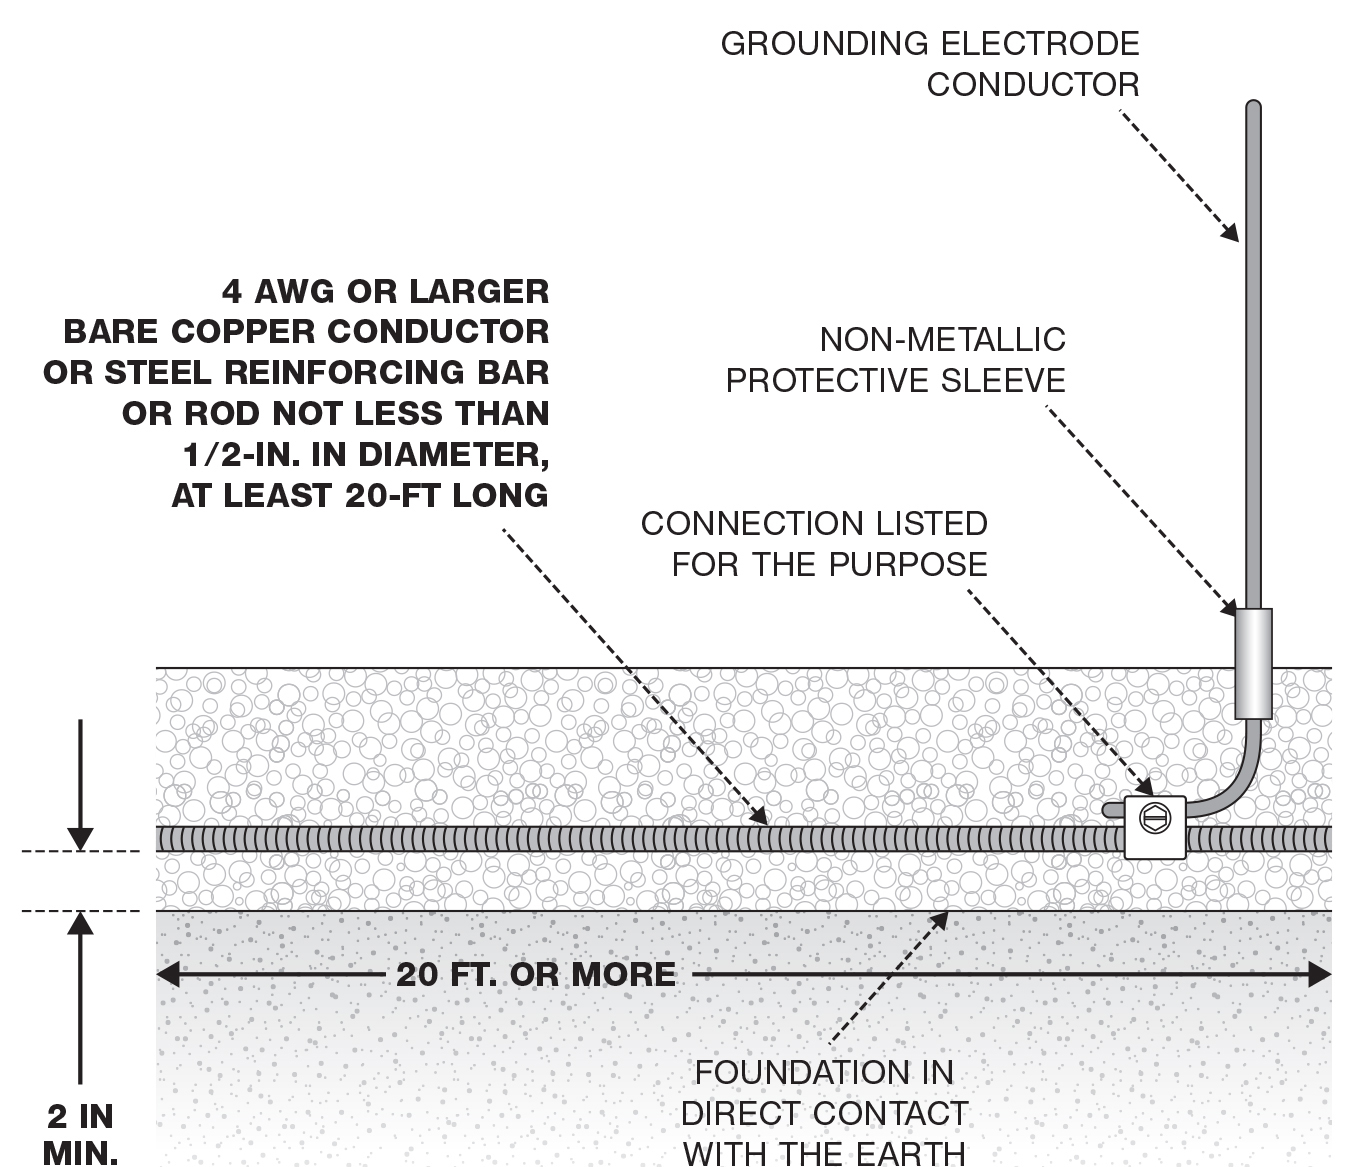 What Is The Purpose Of The Pvc Sleeve In Concrete Earthing